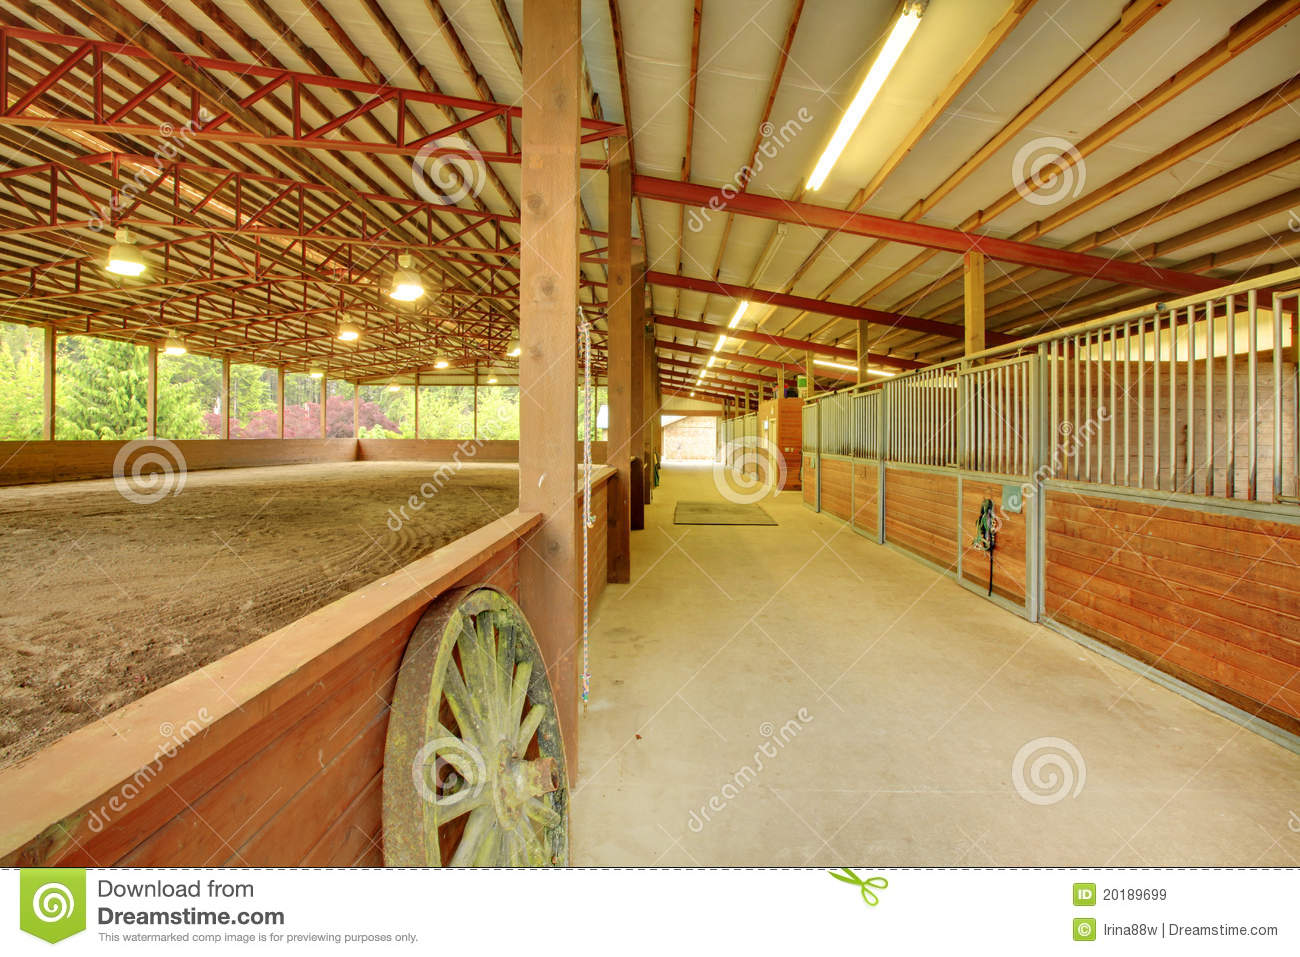 Large Covered Horse Arena With Stables Royalty Free Stock